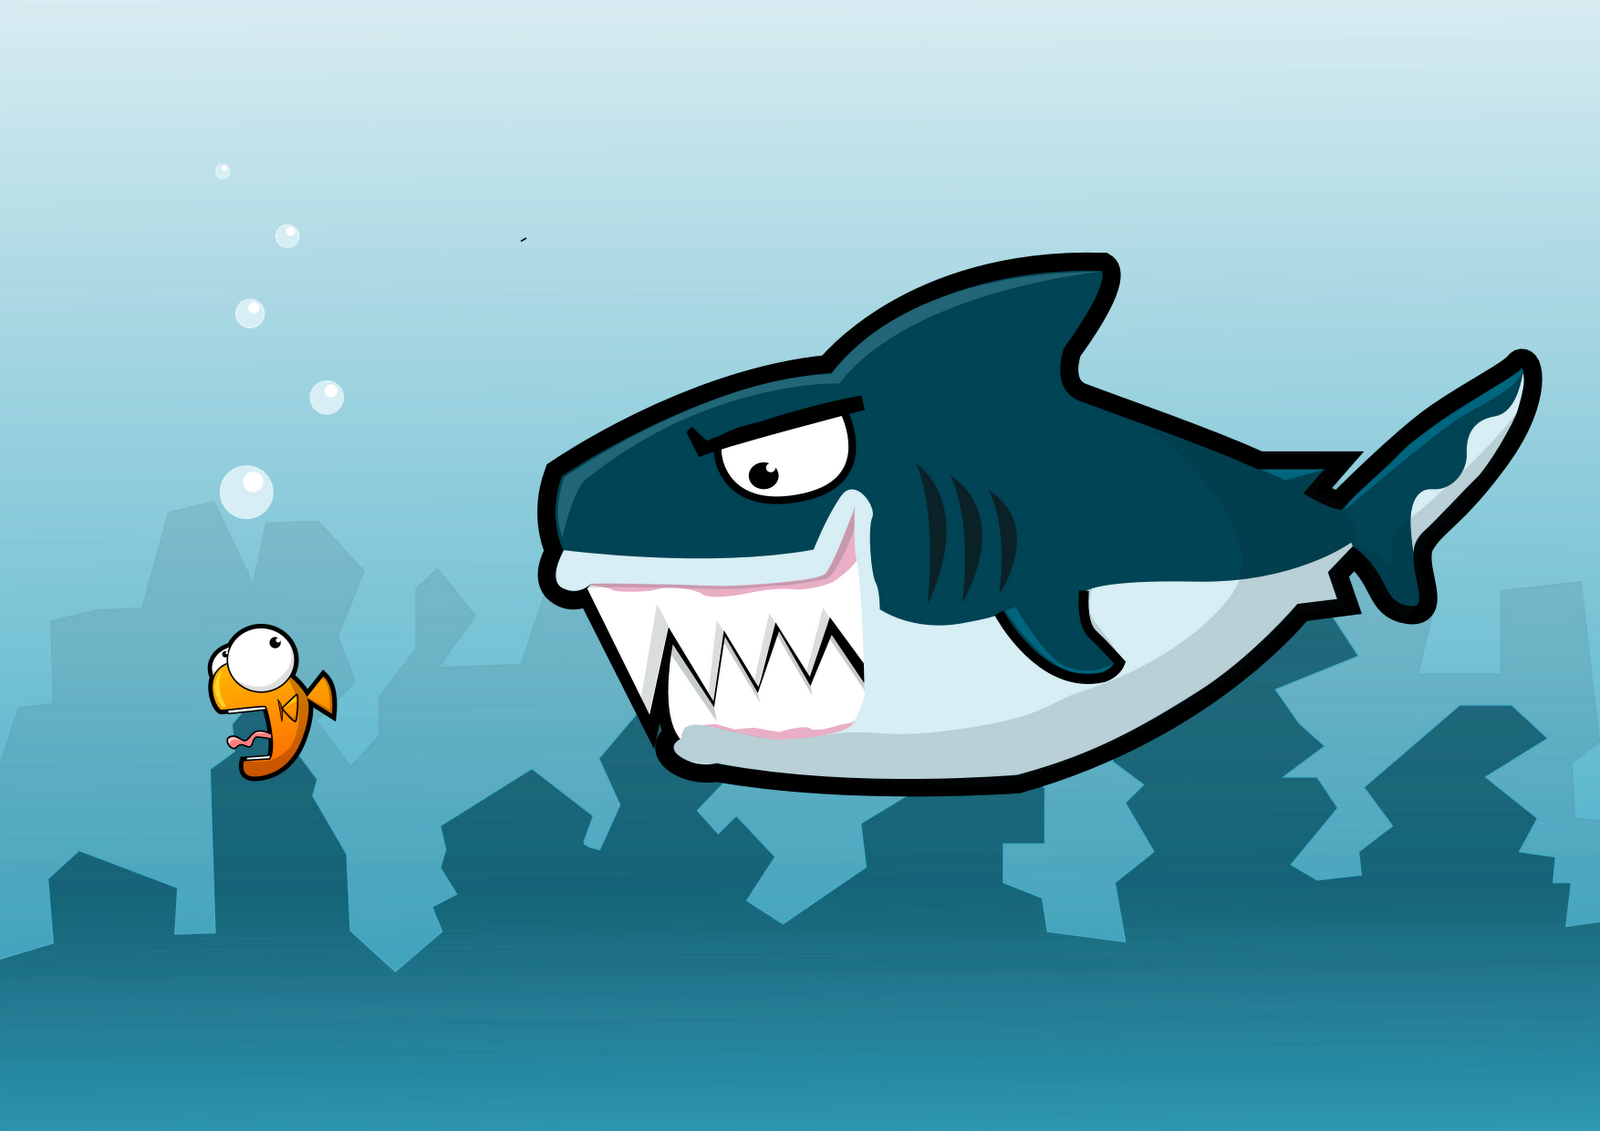 Shark finding nemo transparent. Fish are friends not food clipart png